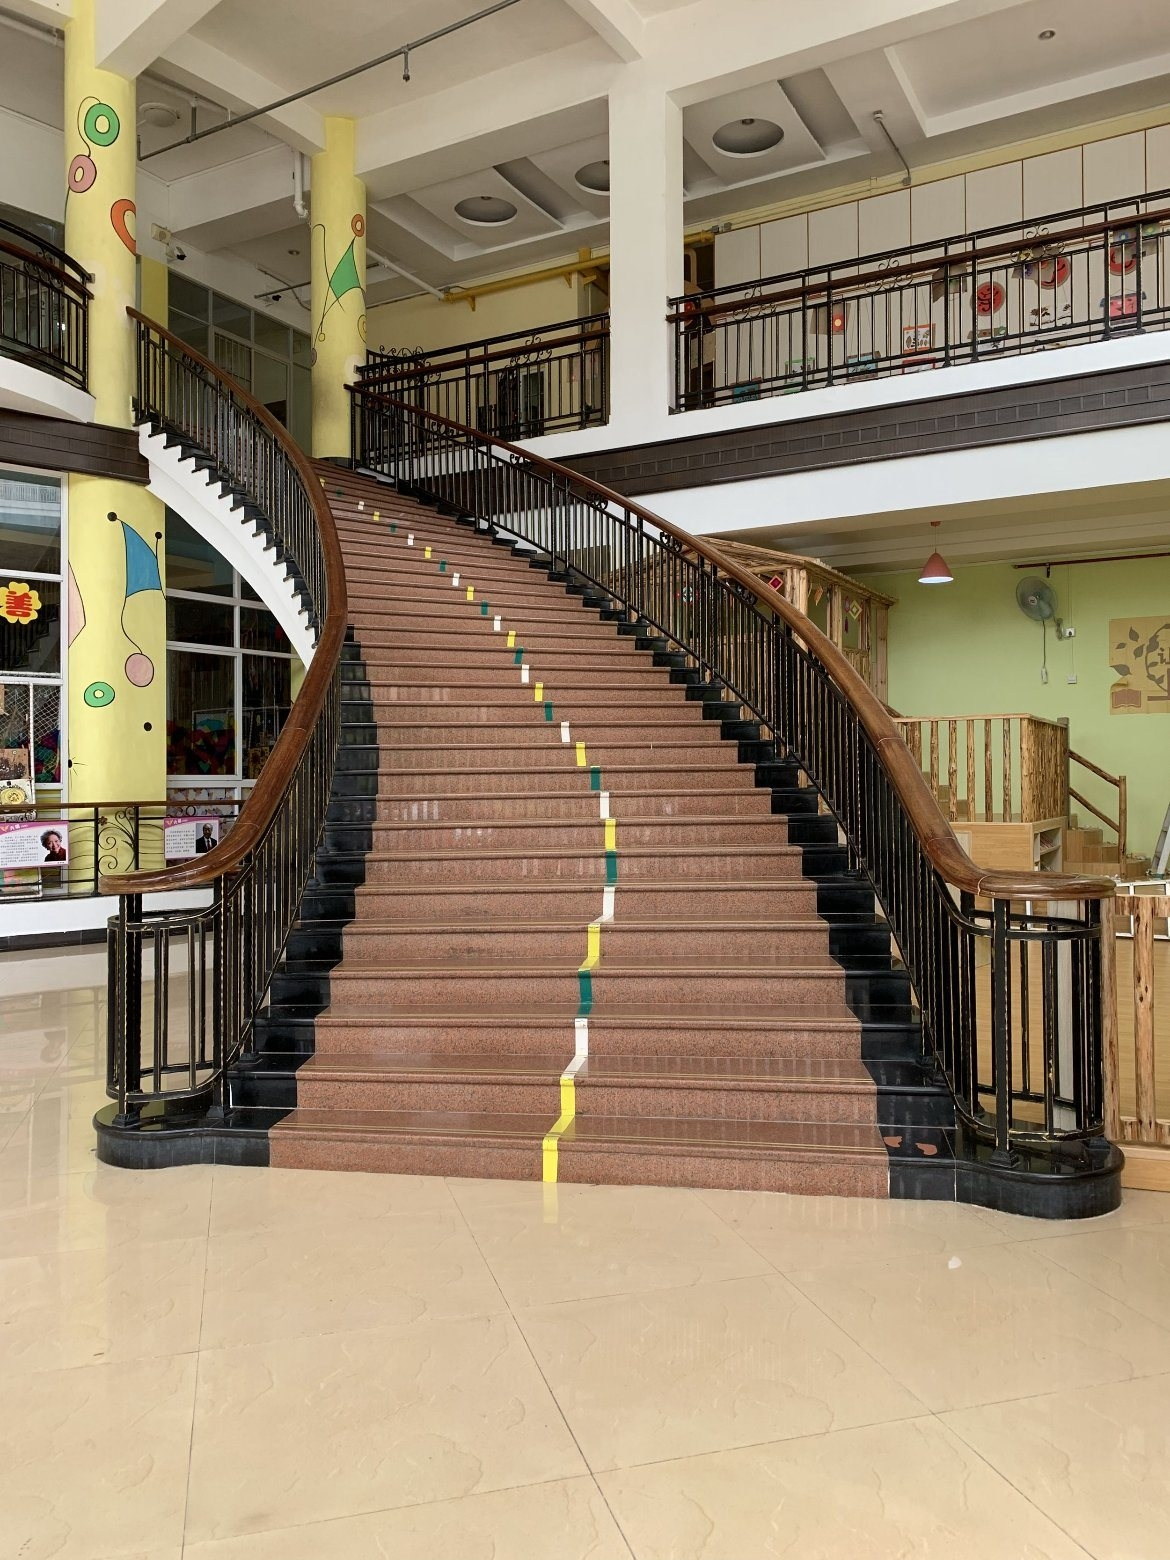 China Customized Luxury Indoor Wrought Iron Stair Railing Design   Wrought Iron Stair Railing   Diy   Staircase   Simple   Silver   Horizontal